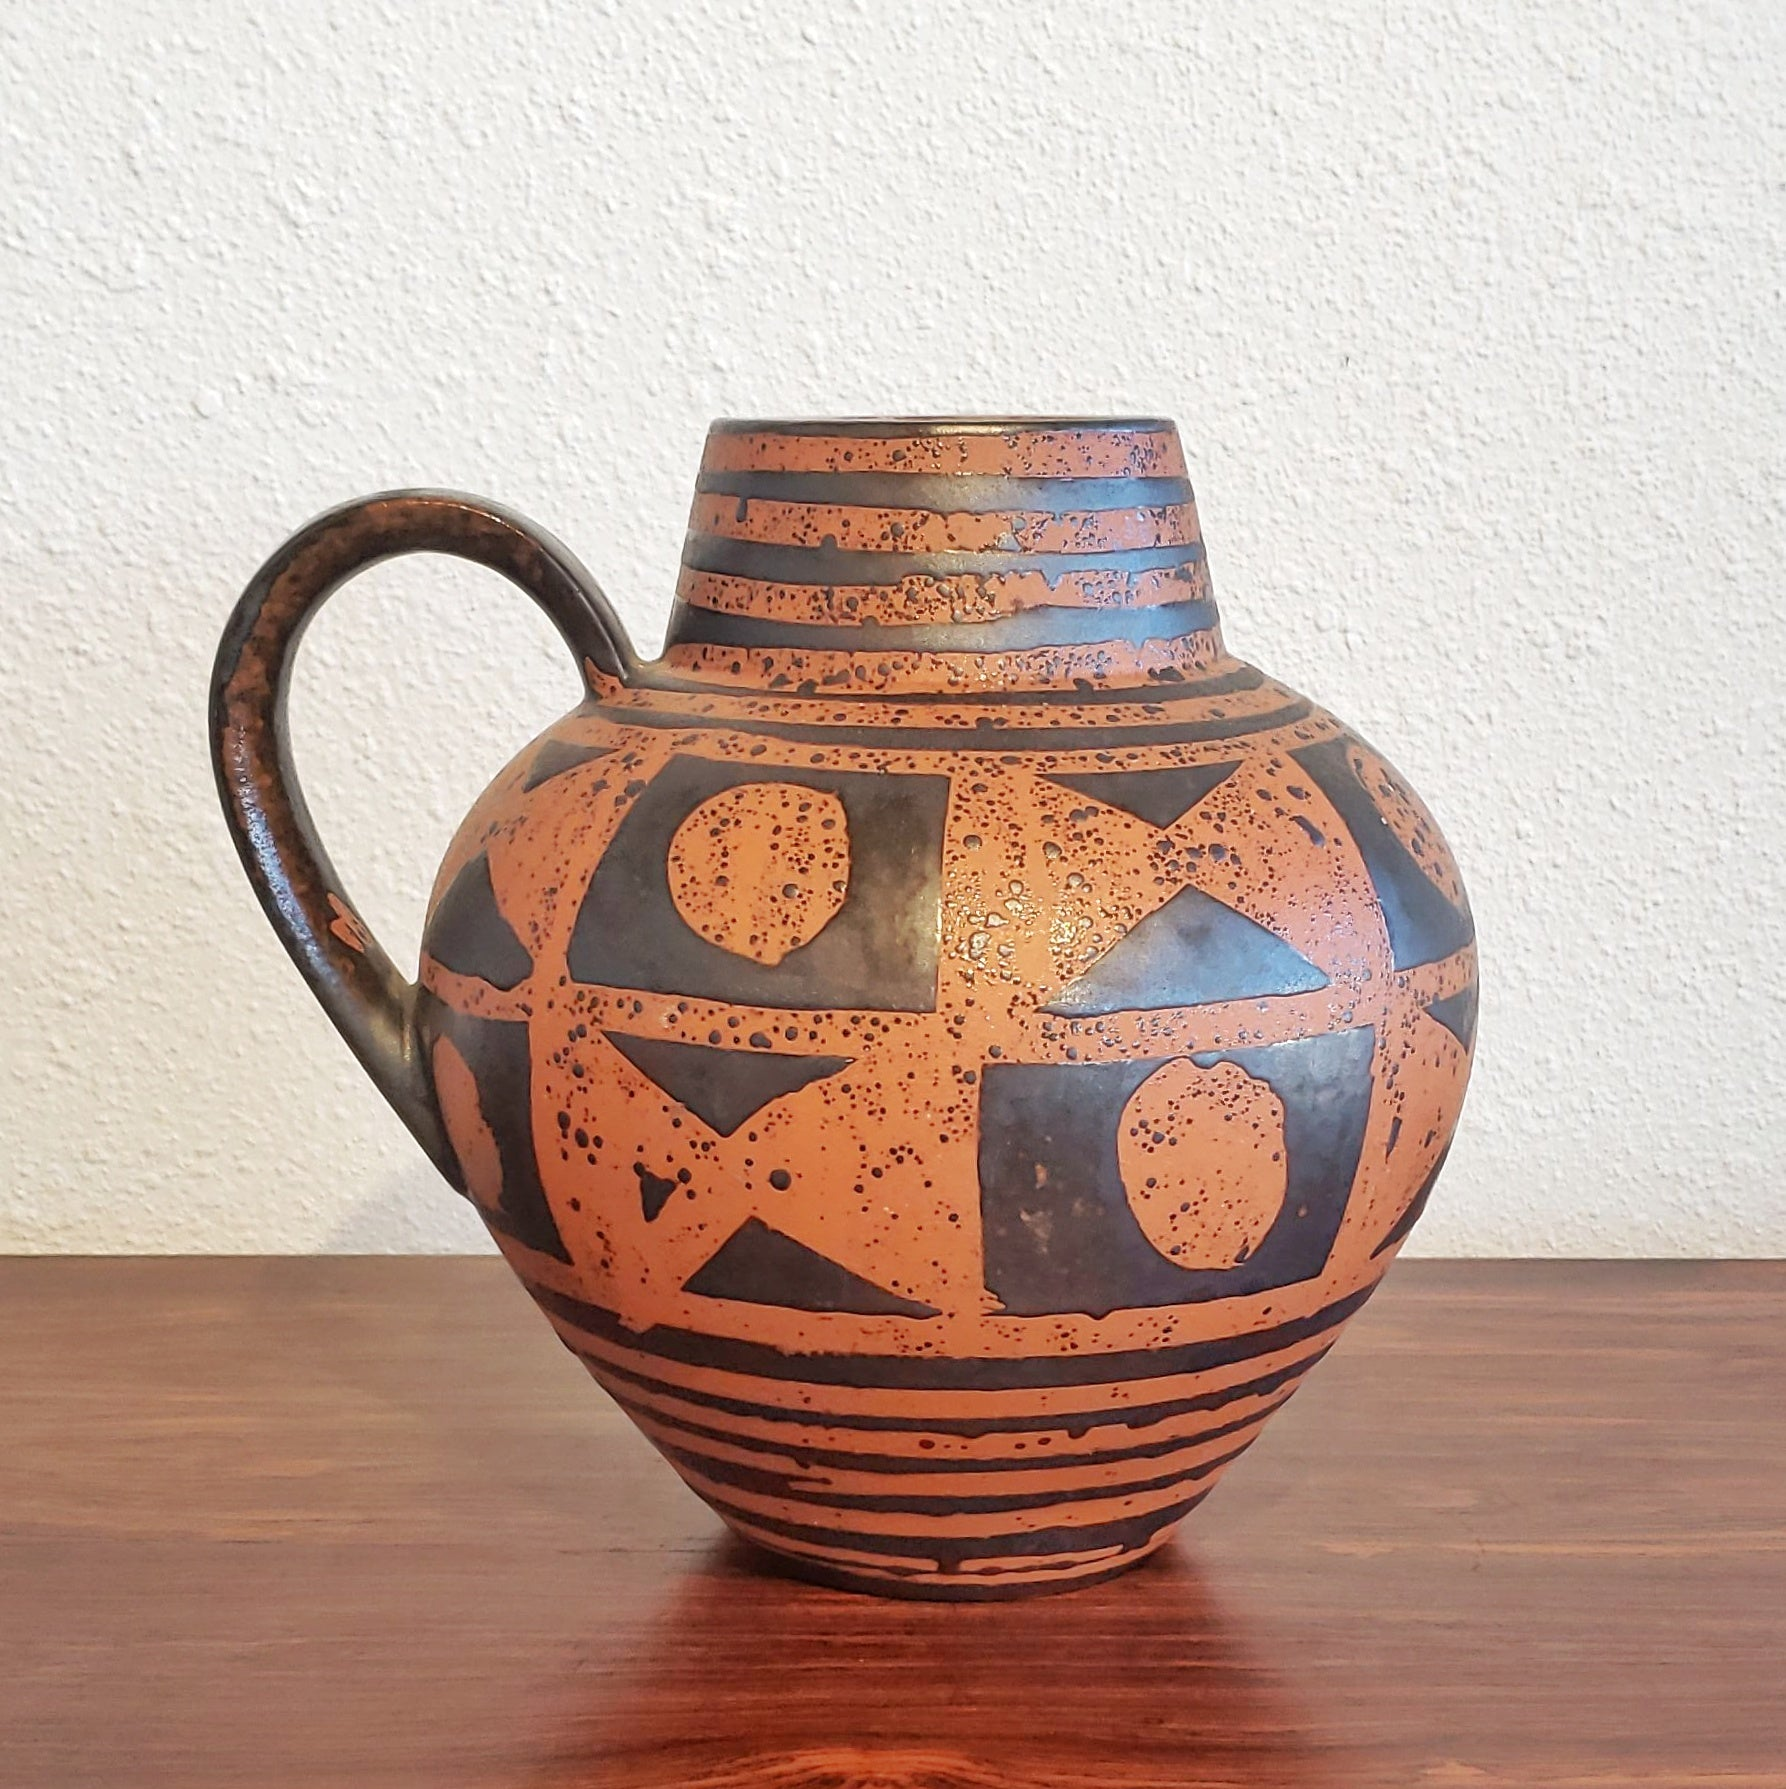 CARSTENS TÖNNIESHOF BLACK ON ORANGE 'ANKARA' JUG VASE 698/23